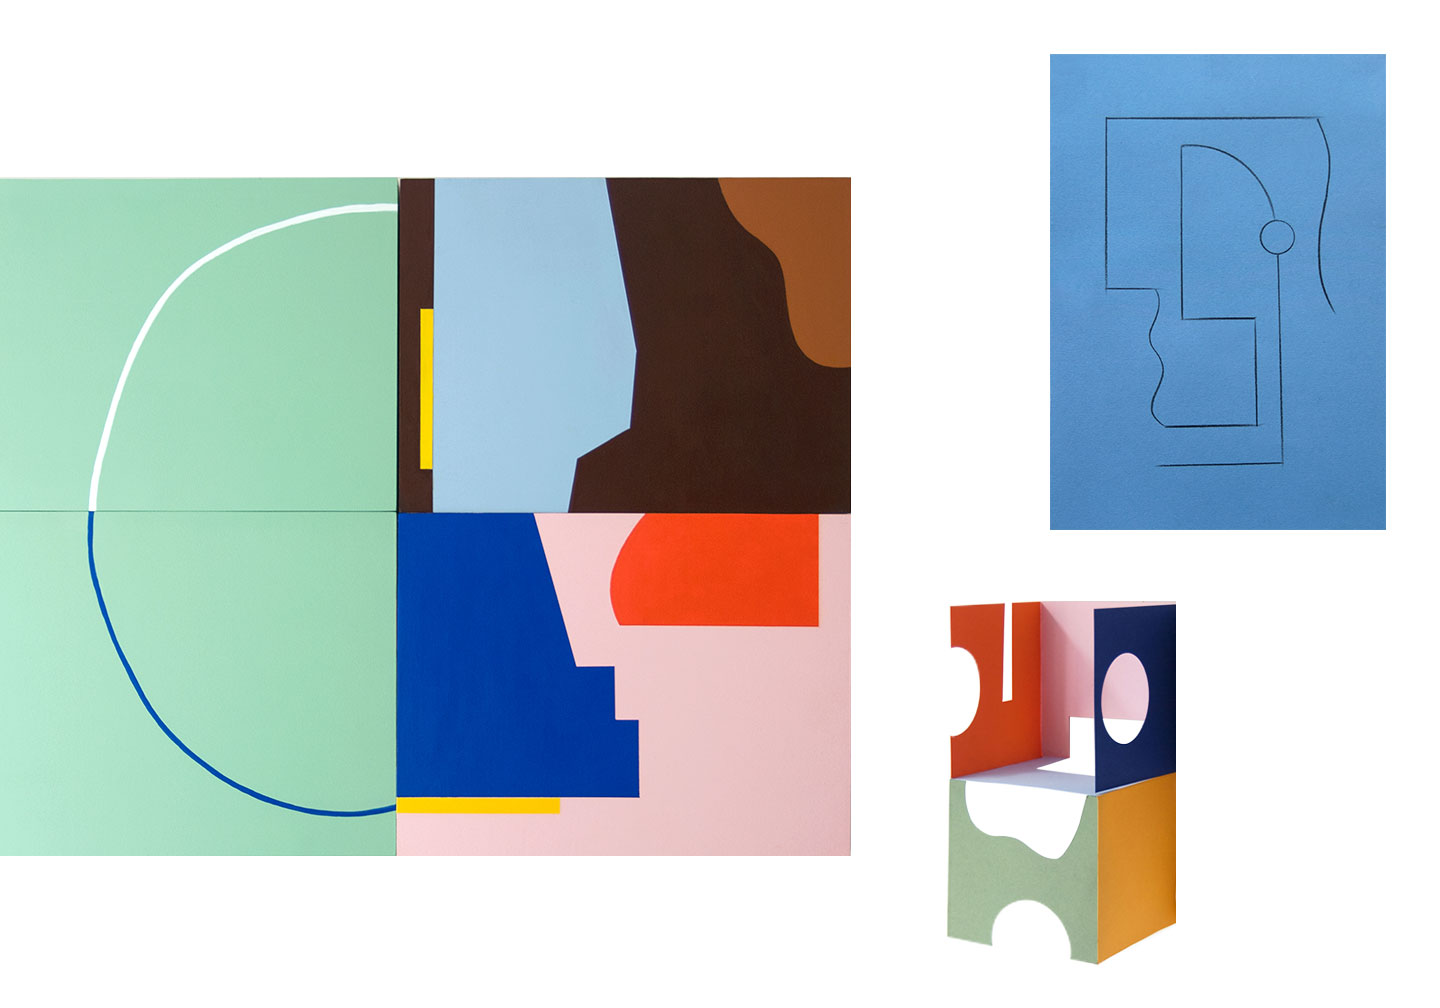 Acrylic Painting on Four Panels - 80cm x 60cm - 2017 Incomplete Structures - from a series of drawings - 2019 Paper Sculpture - 2018